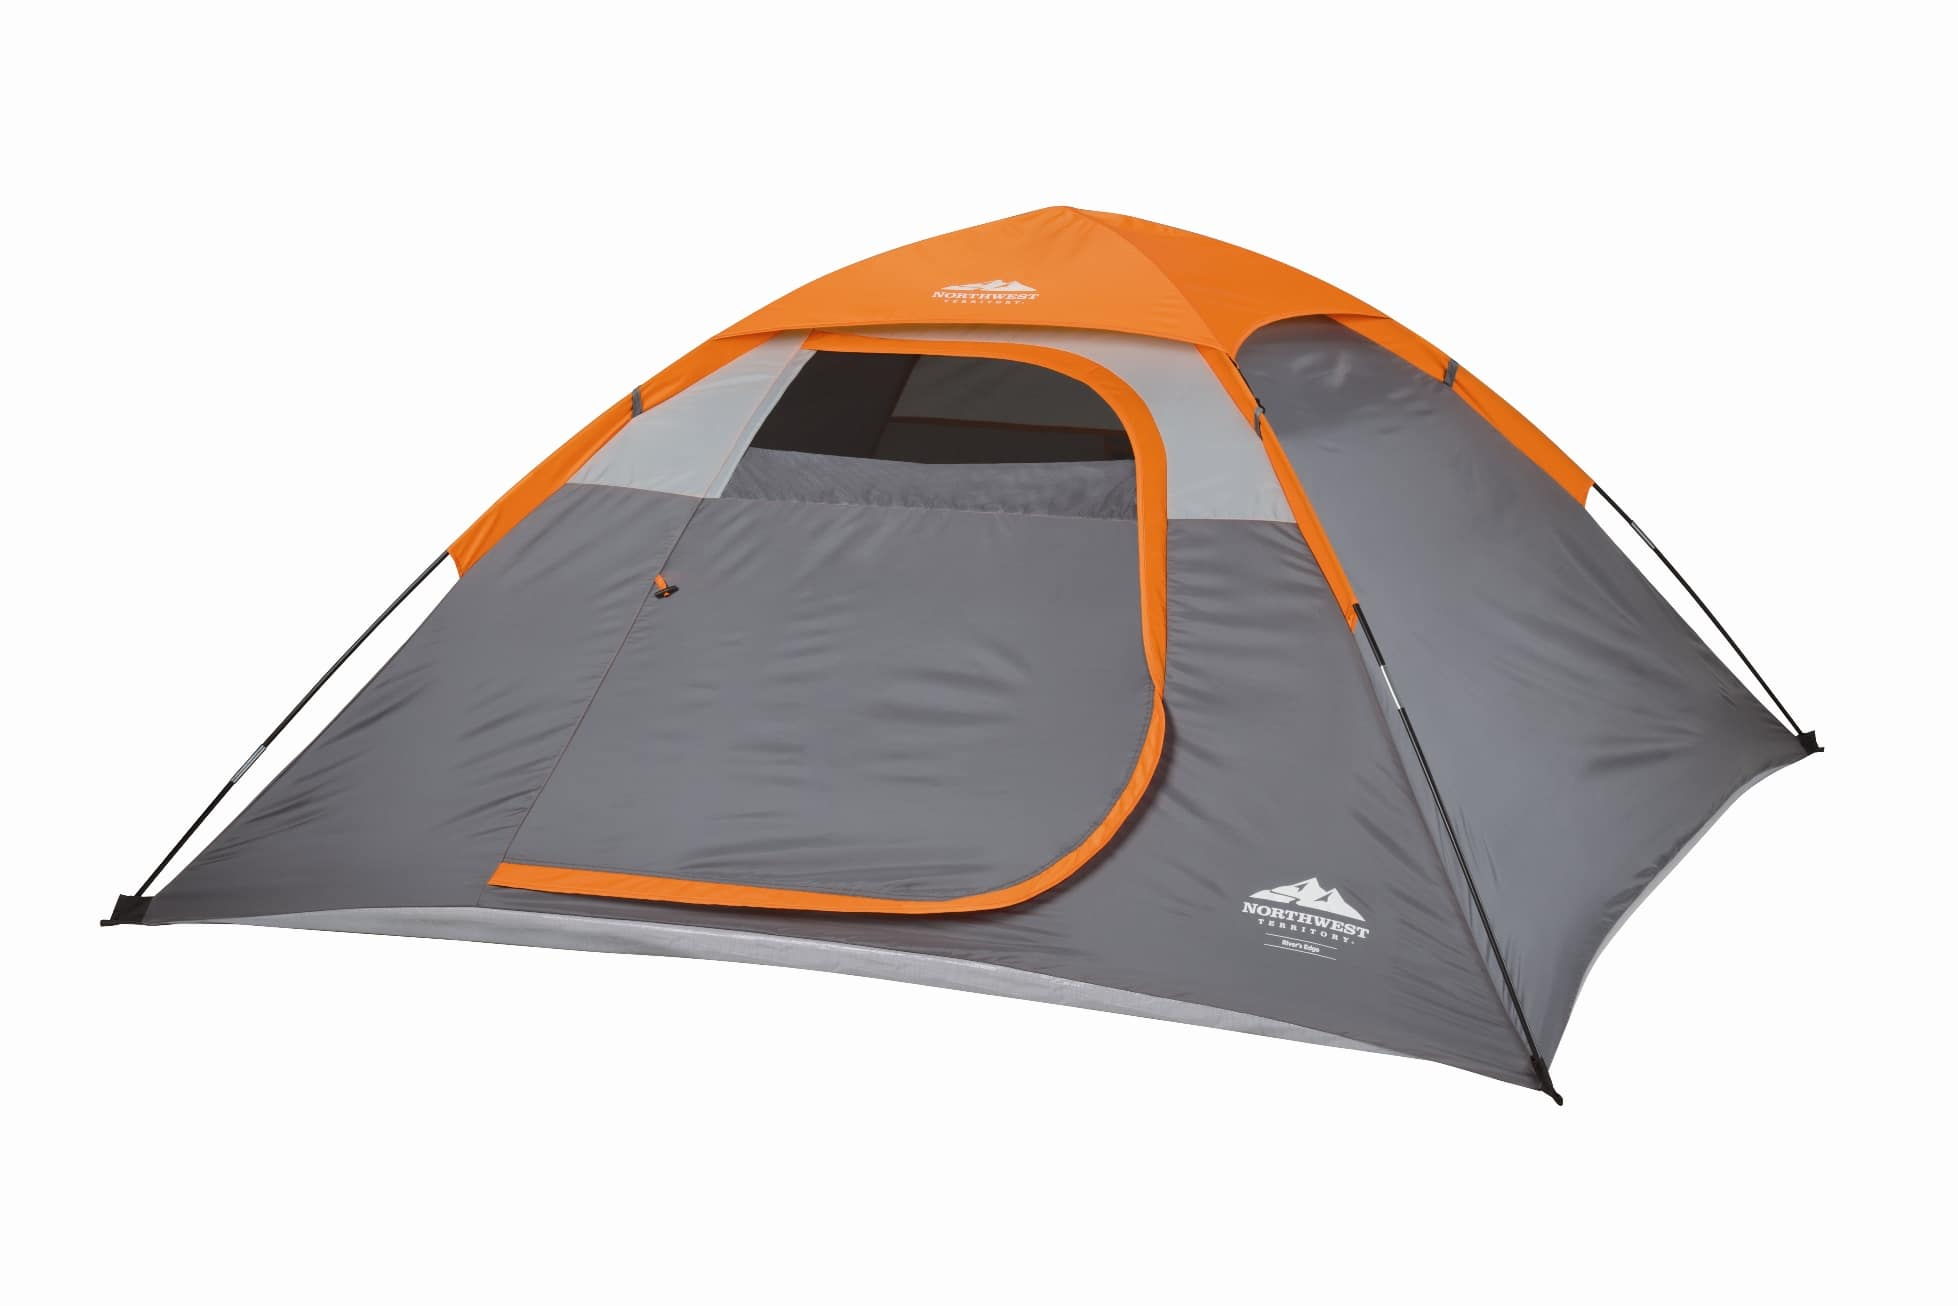 Kmart : Northwest Territory River's Edge Dome Tent (7' x 7') - Orange for $16.99 plus $10 back in points with in-store pick-up